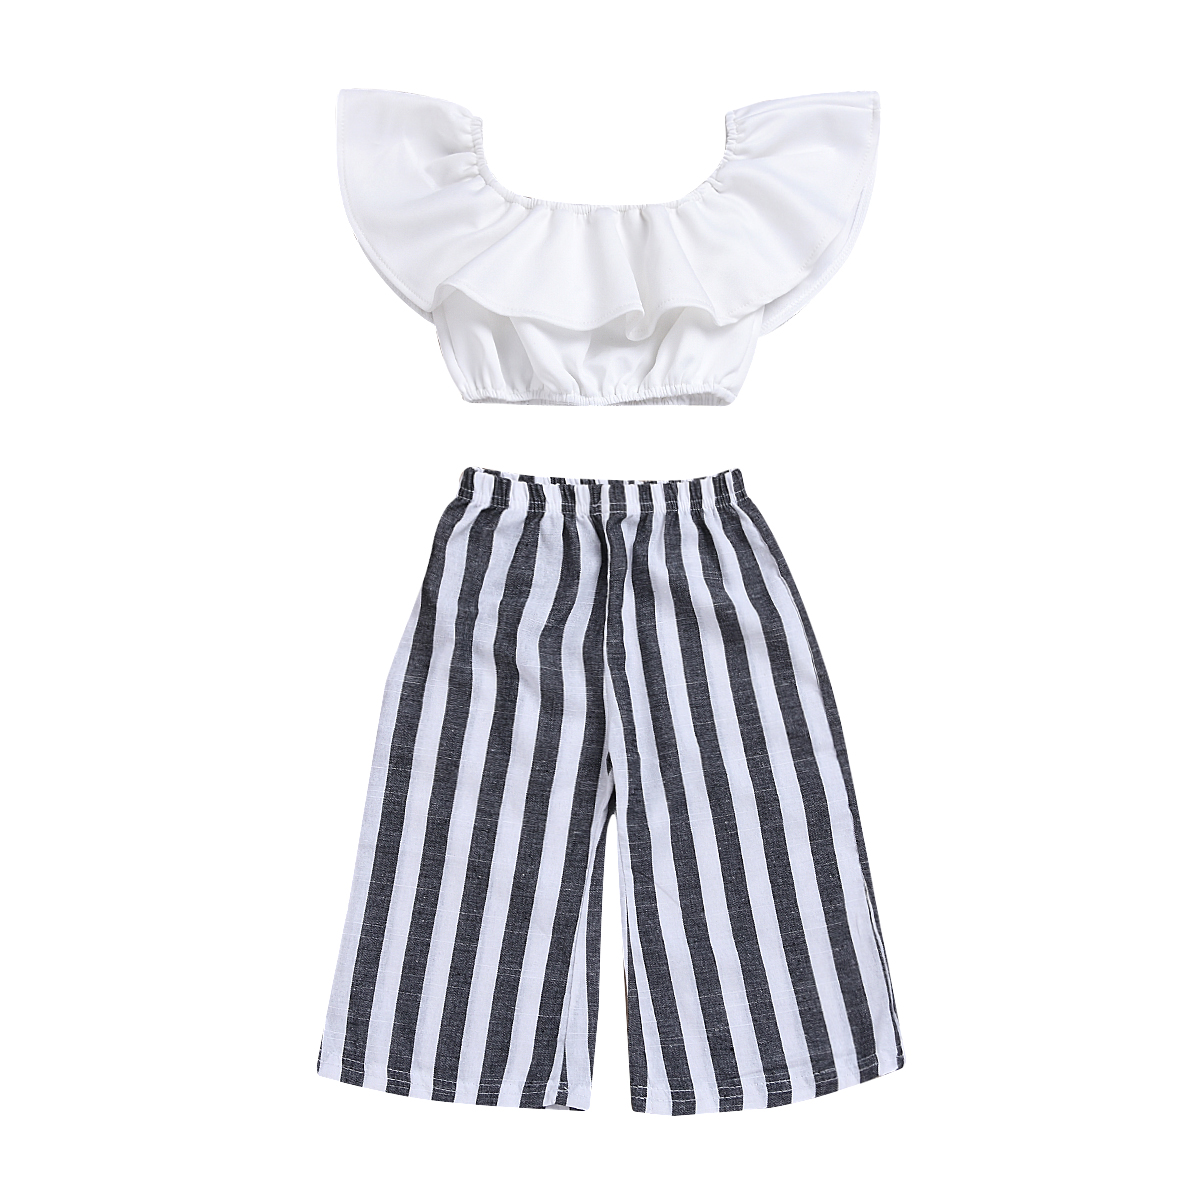 Pudcoco Toddler Girls Summer Clothing Set Off Shoulder Tops Ruffle Blouse+Striped Long Pants 2PCS Boutique Kids Toddler Clothes